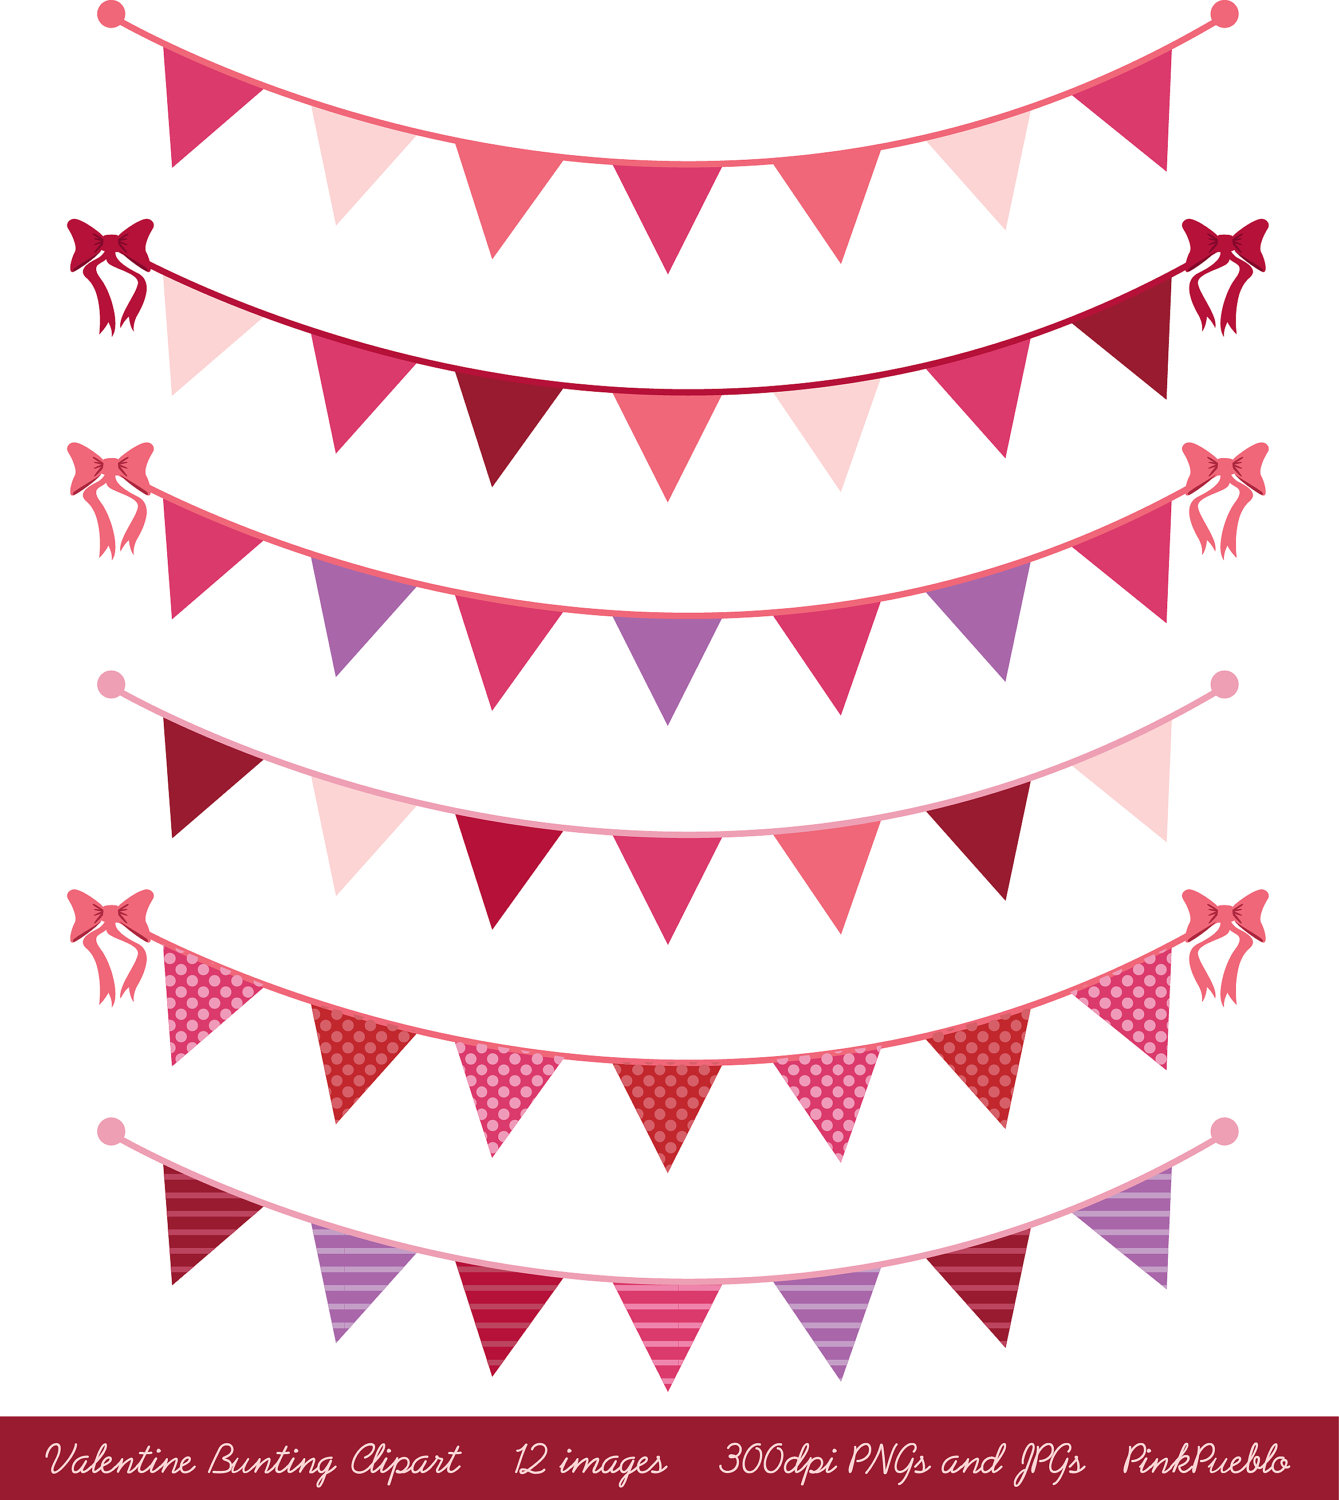 Valentines Day Bunting Clip Art Clipart, Valentines Day Clip Art.